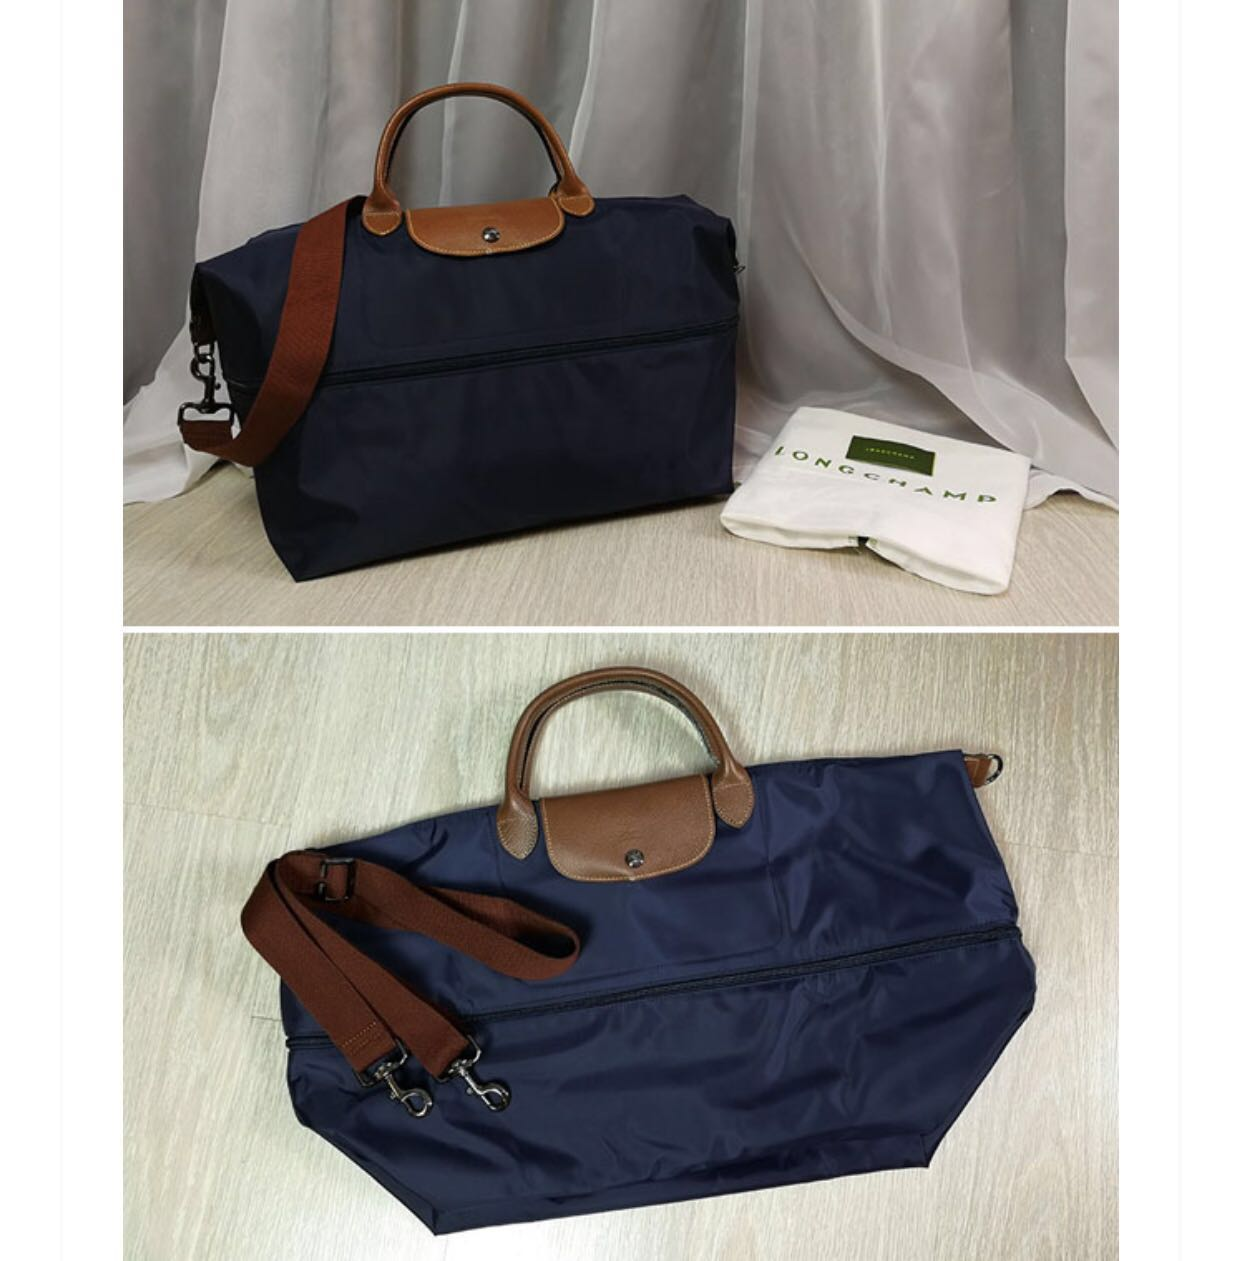 AUTH LONGCHAMP LE PLIAGE EXPANDABLE TRAVEL TOTE 1199089 (NAVY) LIMITED  UNITS ONLY!!!, Women\u0027s Fashion, Bags \u0026 Wallets on Carousell